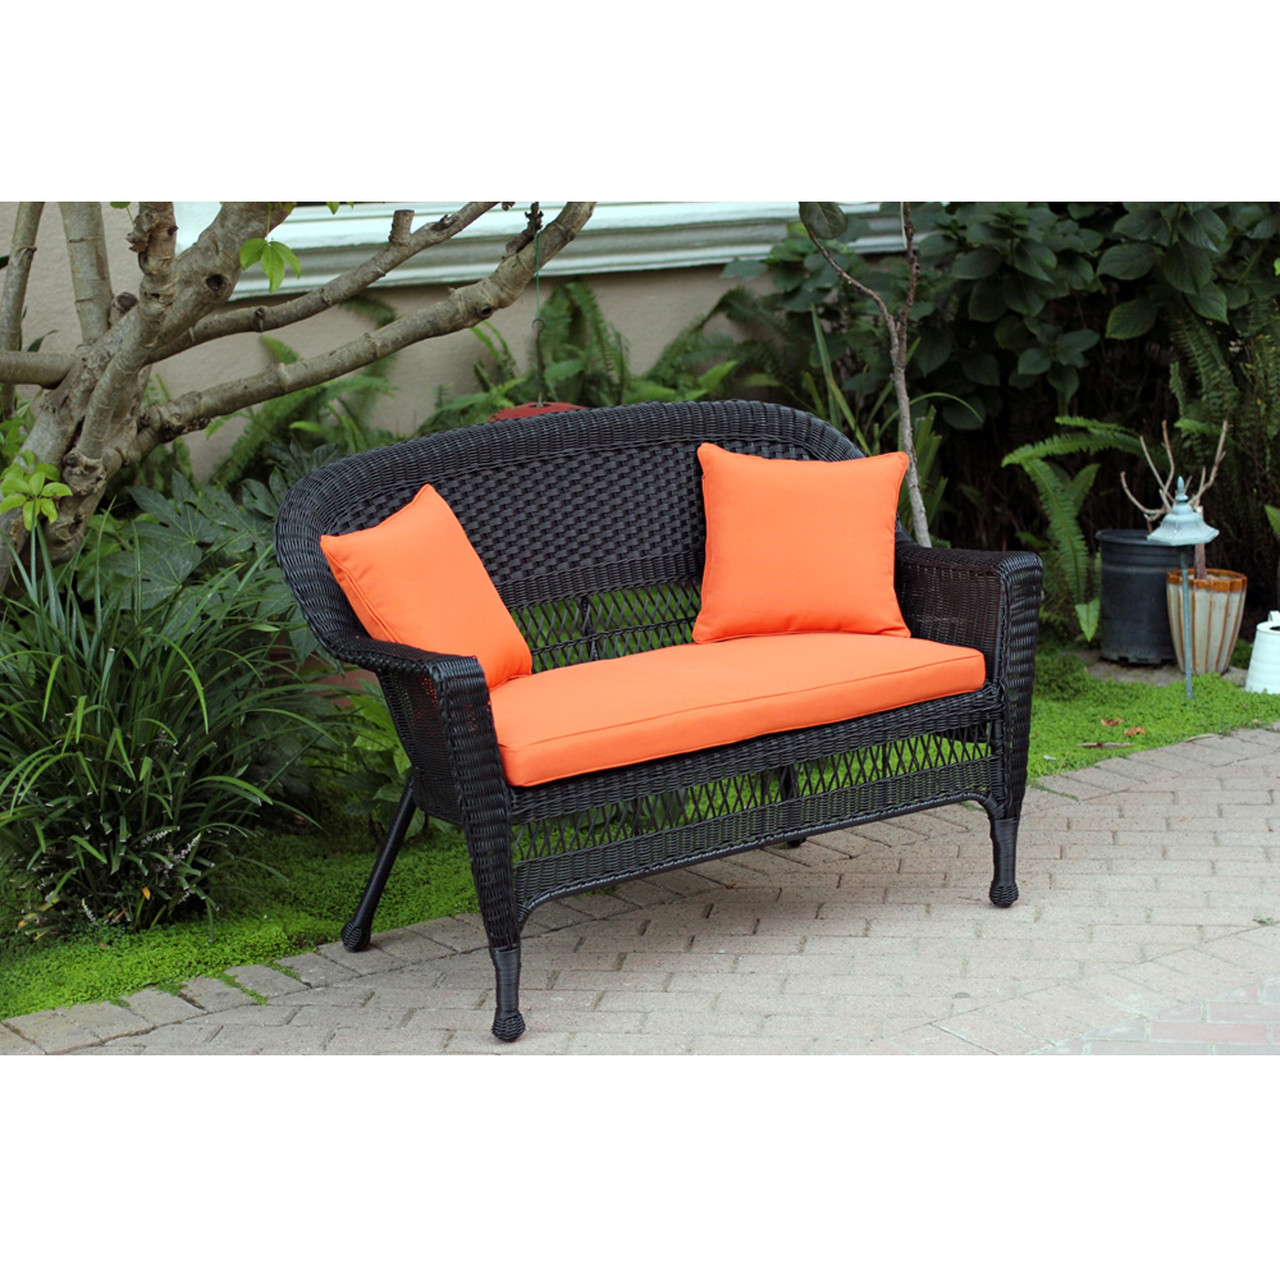 51 black resin wicker outdoor patio garden love seat orange cushion pillows